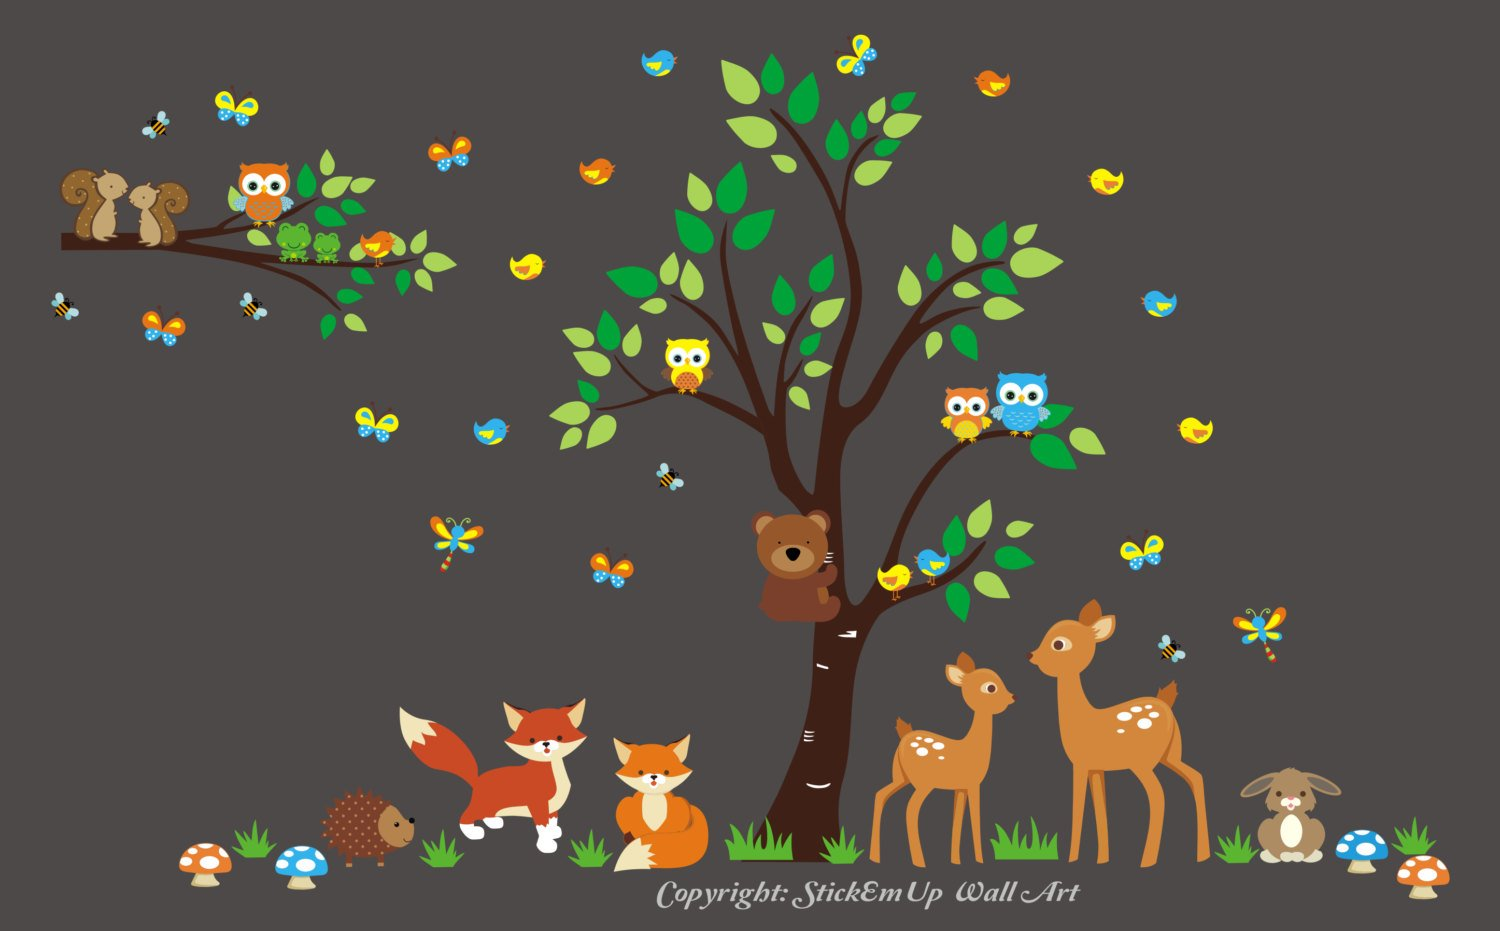 Baby Nursery Wall Decals - Forest Animal Wall Stickers - Nature Themed Wall Decals - Wildlife Wall Stickers - Forest Themed Nursery Decor - Deer Decal - Fox Decal - Rabbitt Decal - Nursery Gift